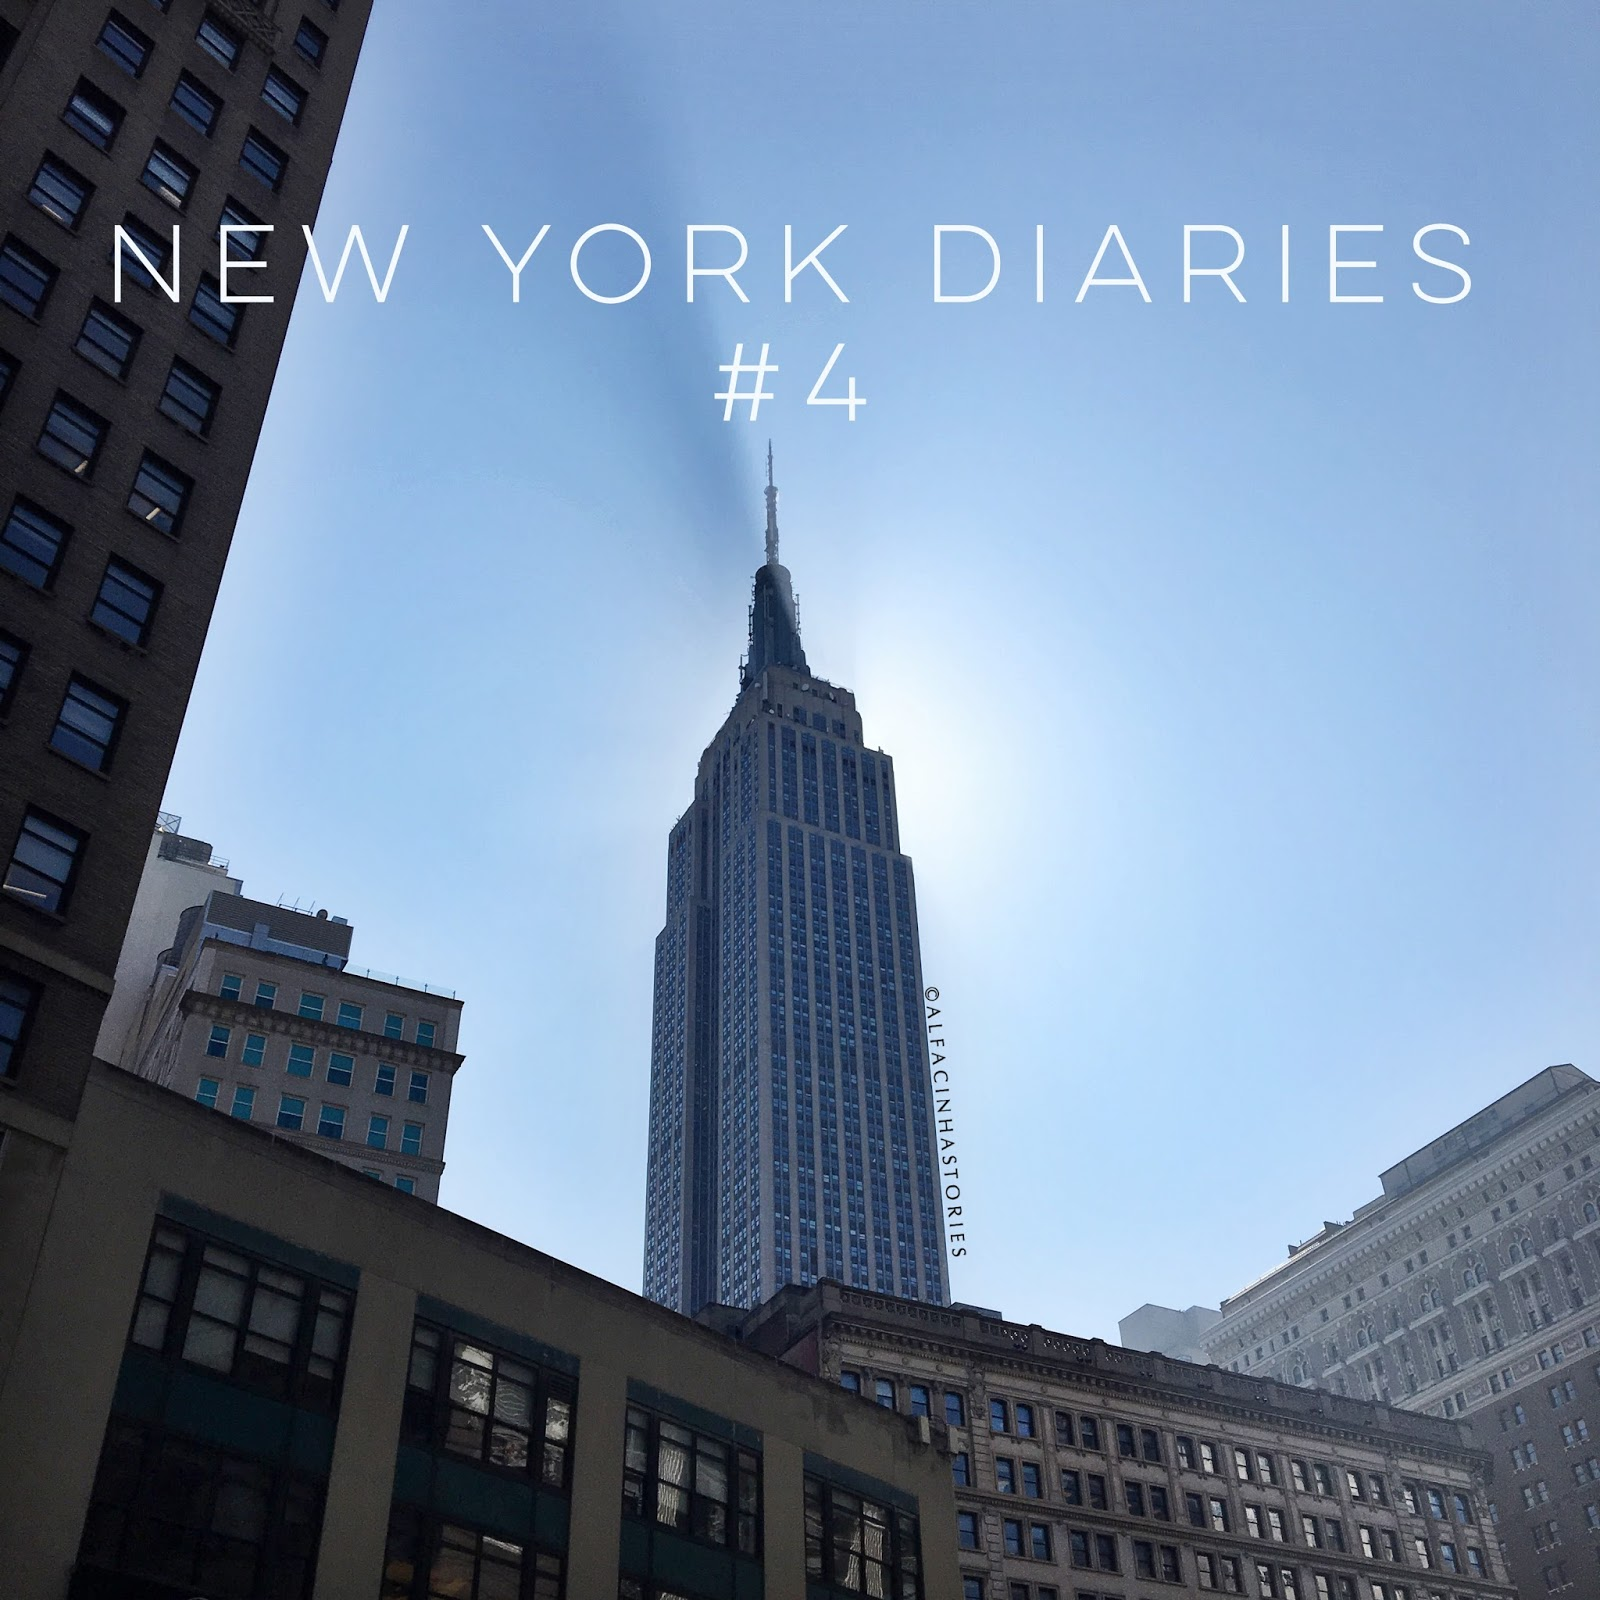 The New York Diares #4